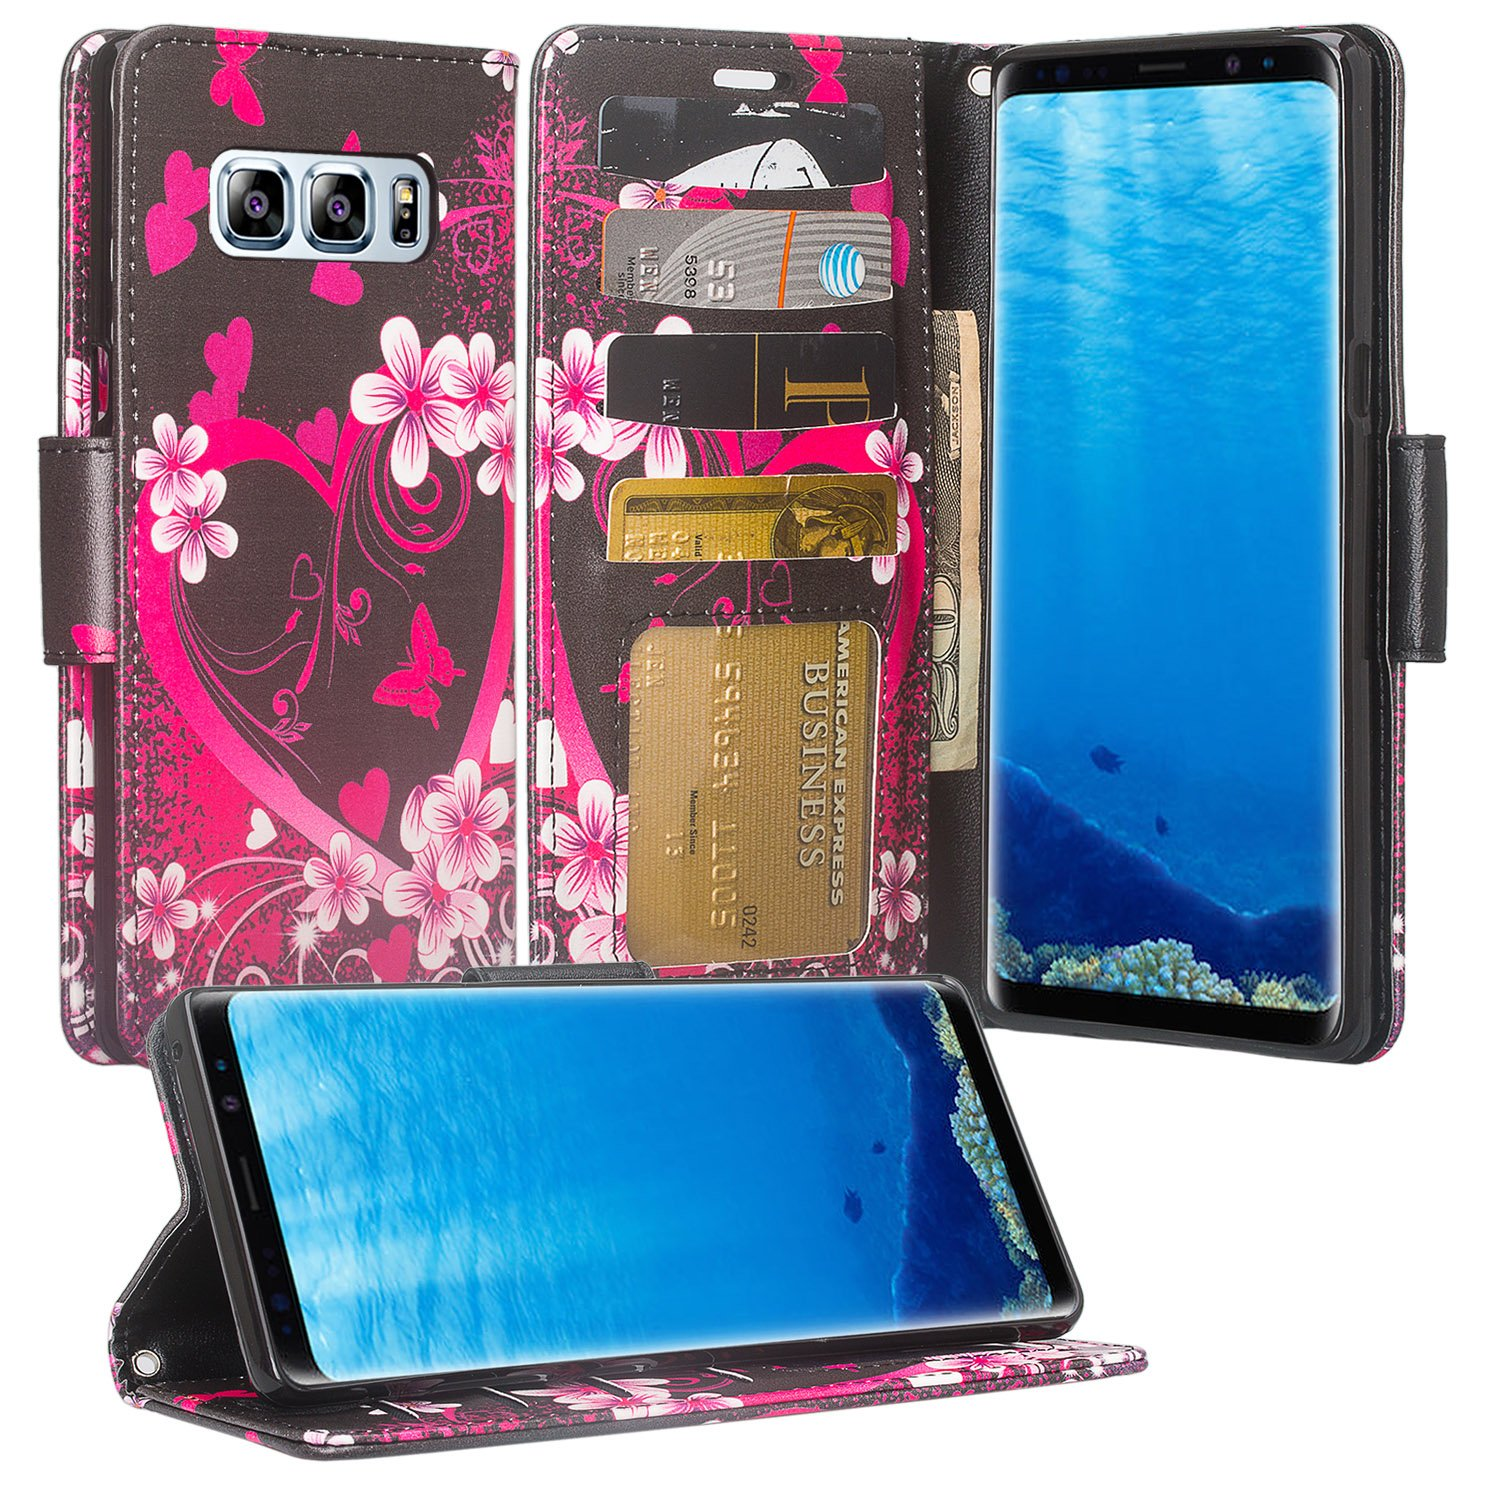 Samsung Galaxy Note 8 Case, Kickstand Pu Leather Wrist Strap Wallet Cover with Slots - Heart Butterflies